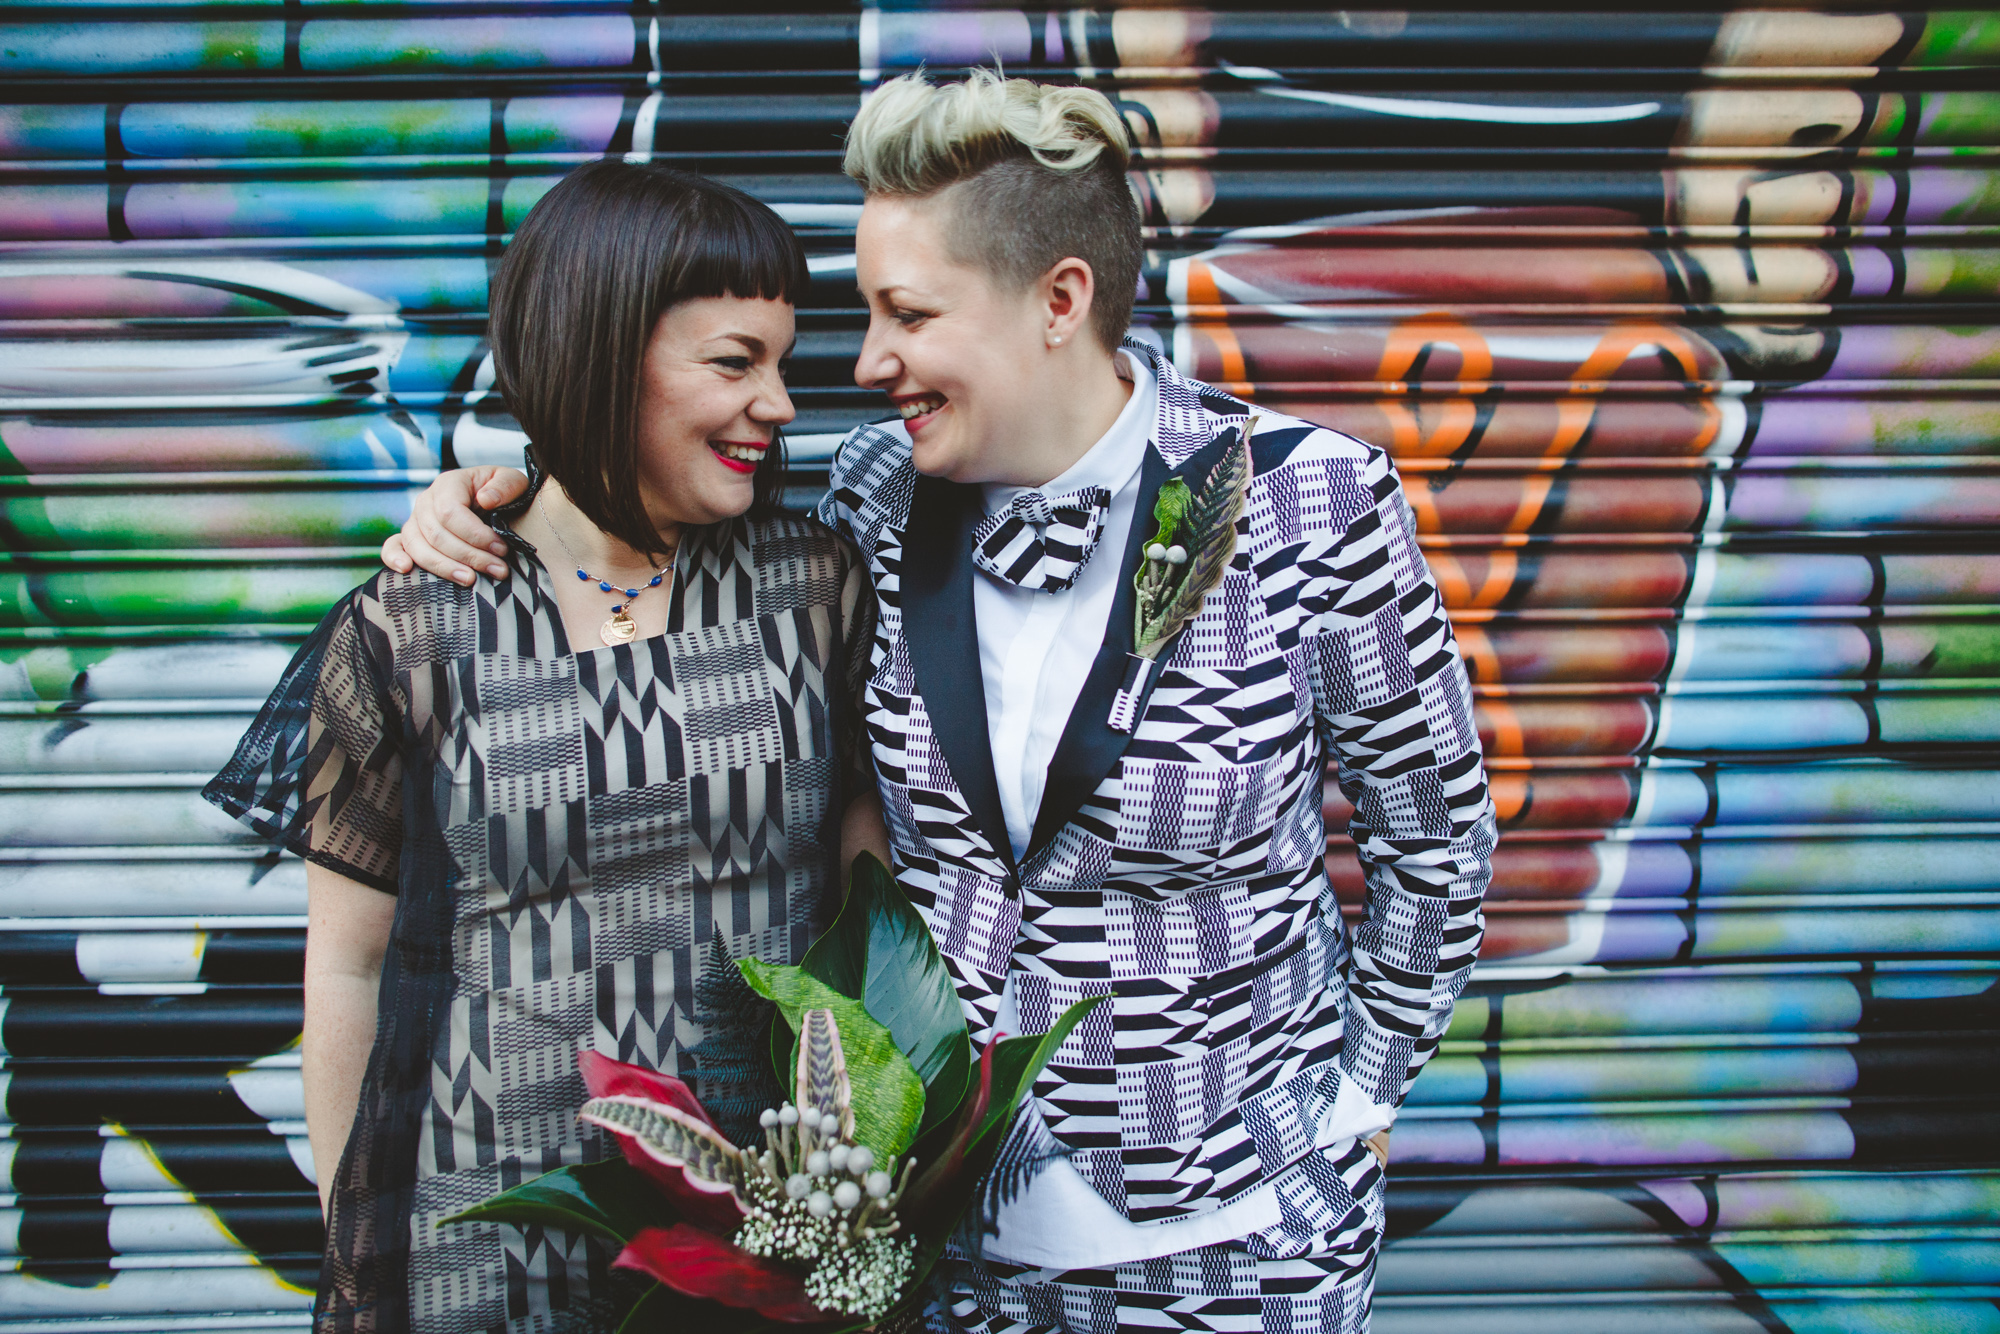 hackney wick wedding photography, cool wedding, london wedding, graffiti wedding photo